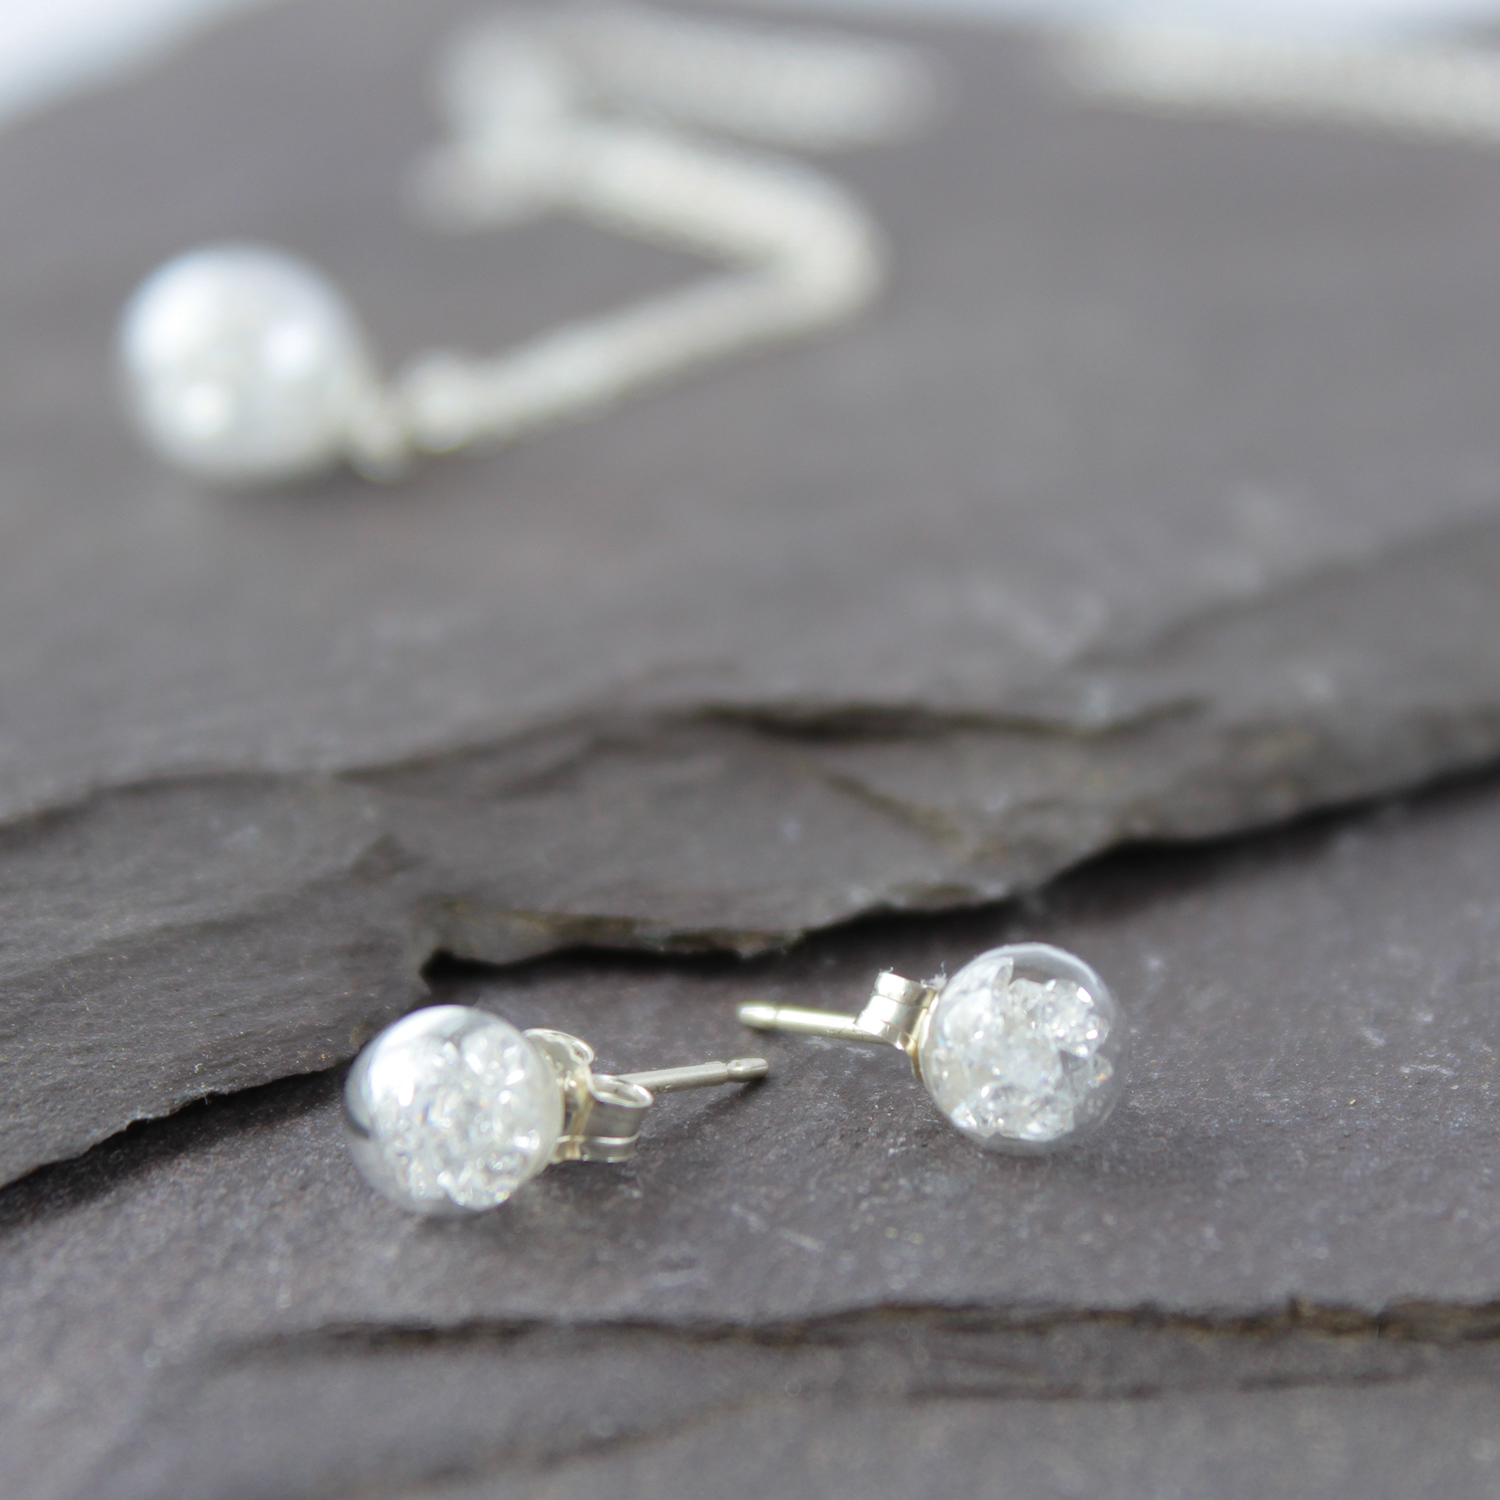 Crystal Collection - Made with Tiny Diamond Cut Crystals